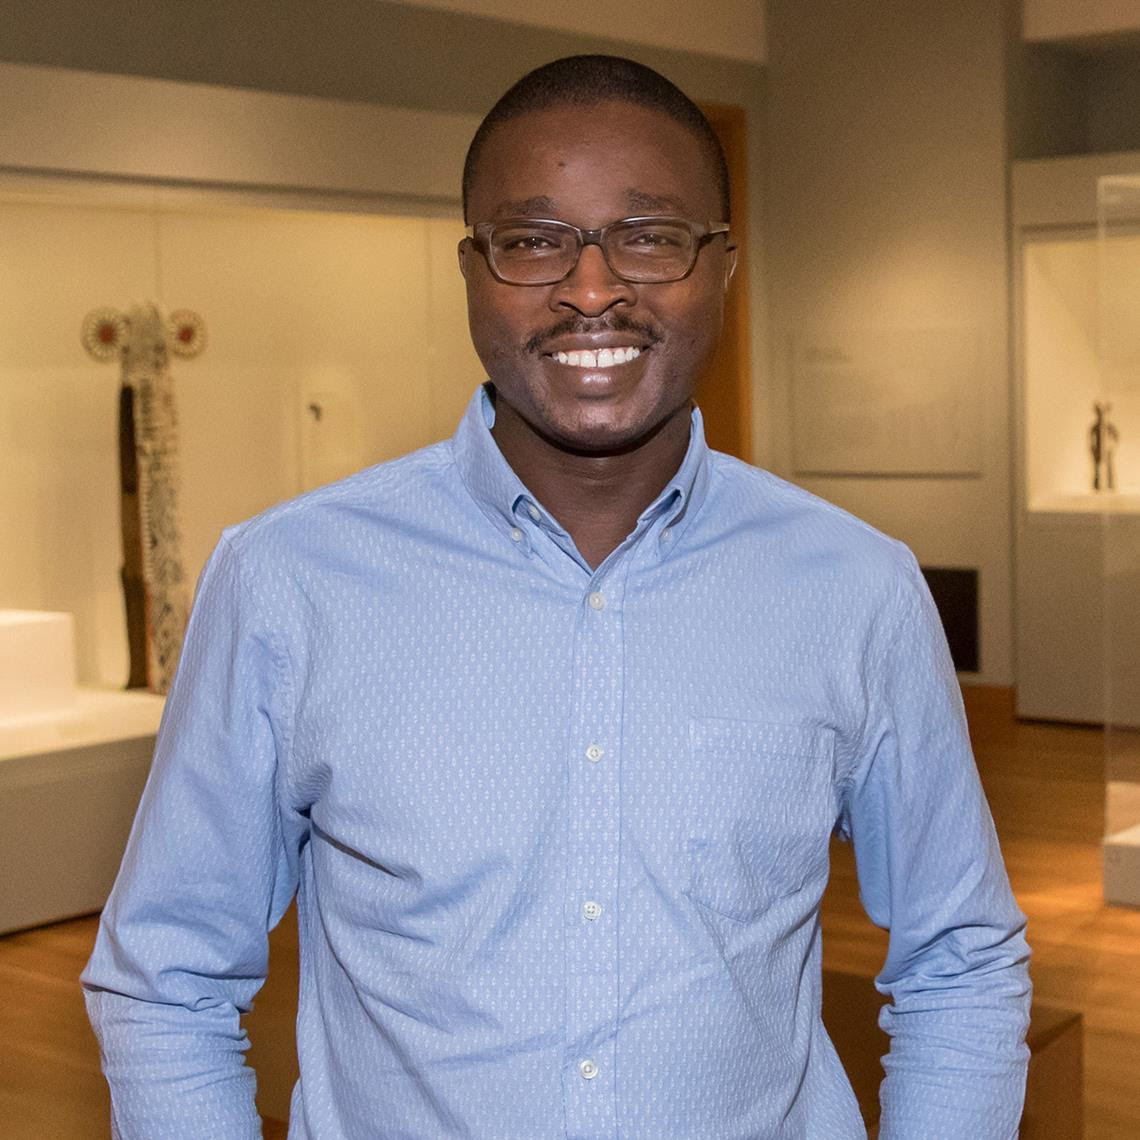 Ugochukwu-Smooth C. Nzewi Joins MoMA as Curator